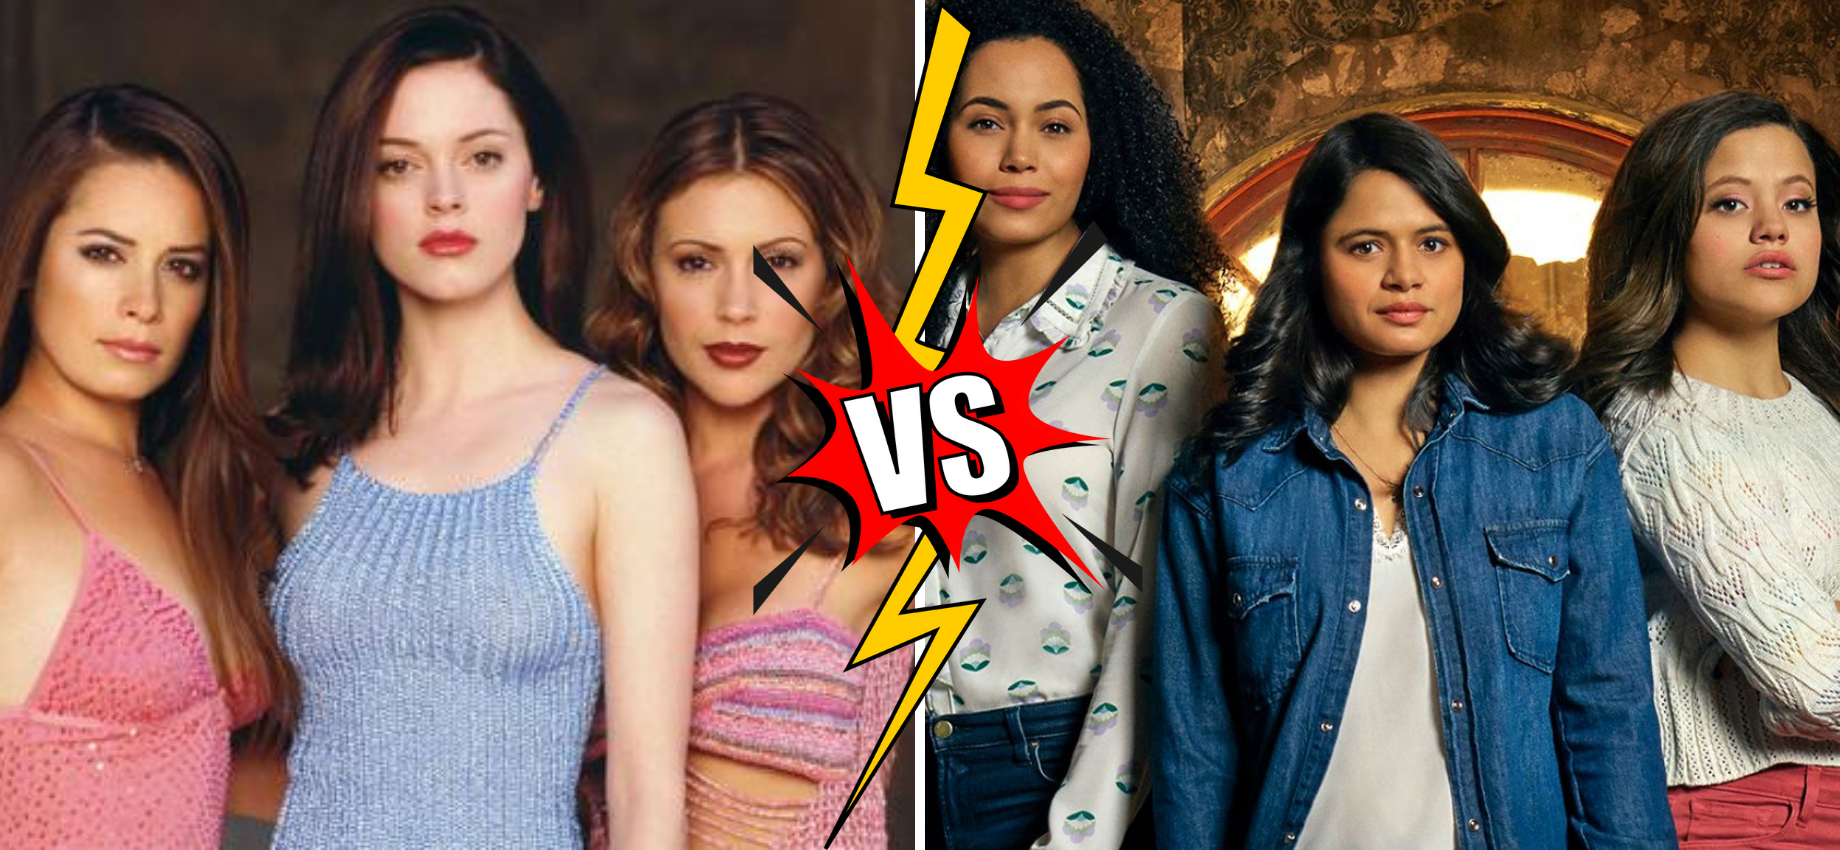 The Solution to This 'Charmed' Mess: Everyone Shut Up